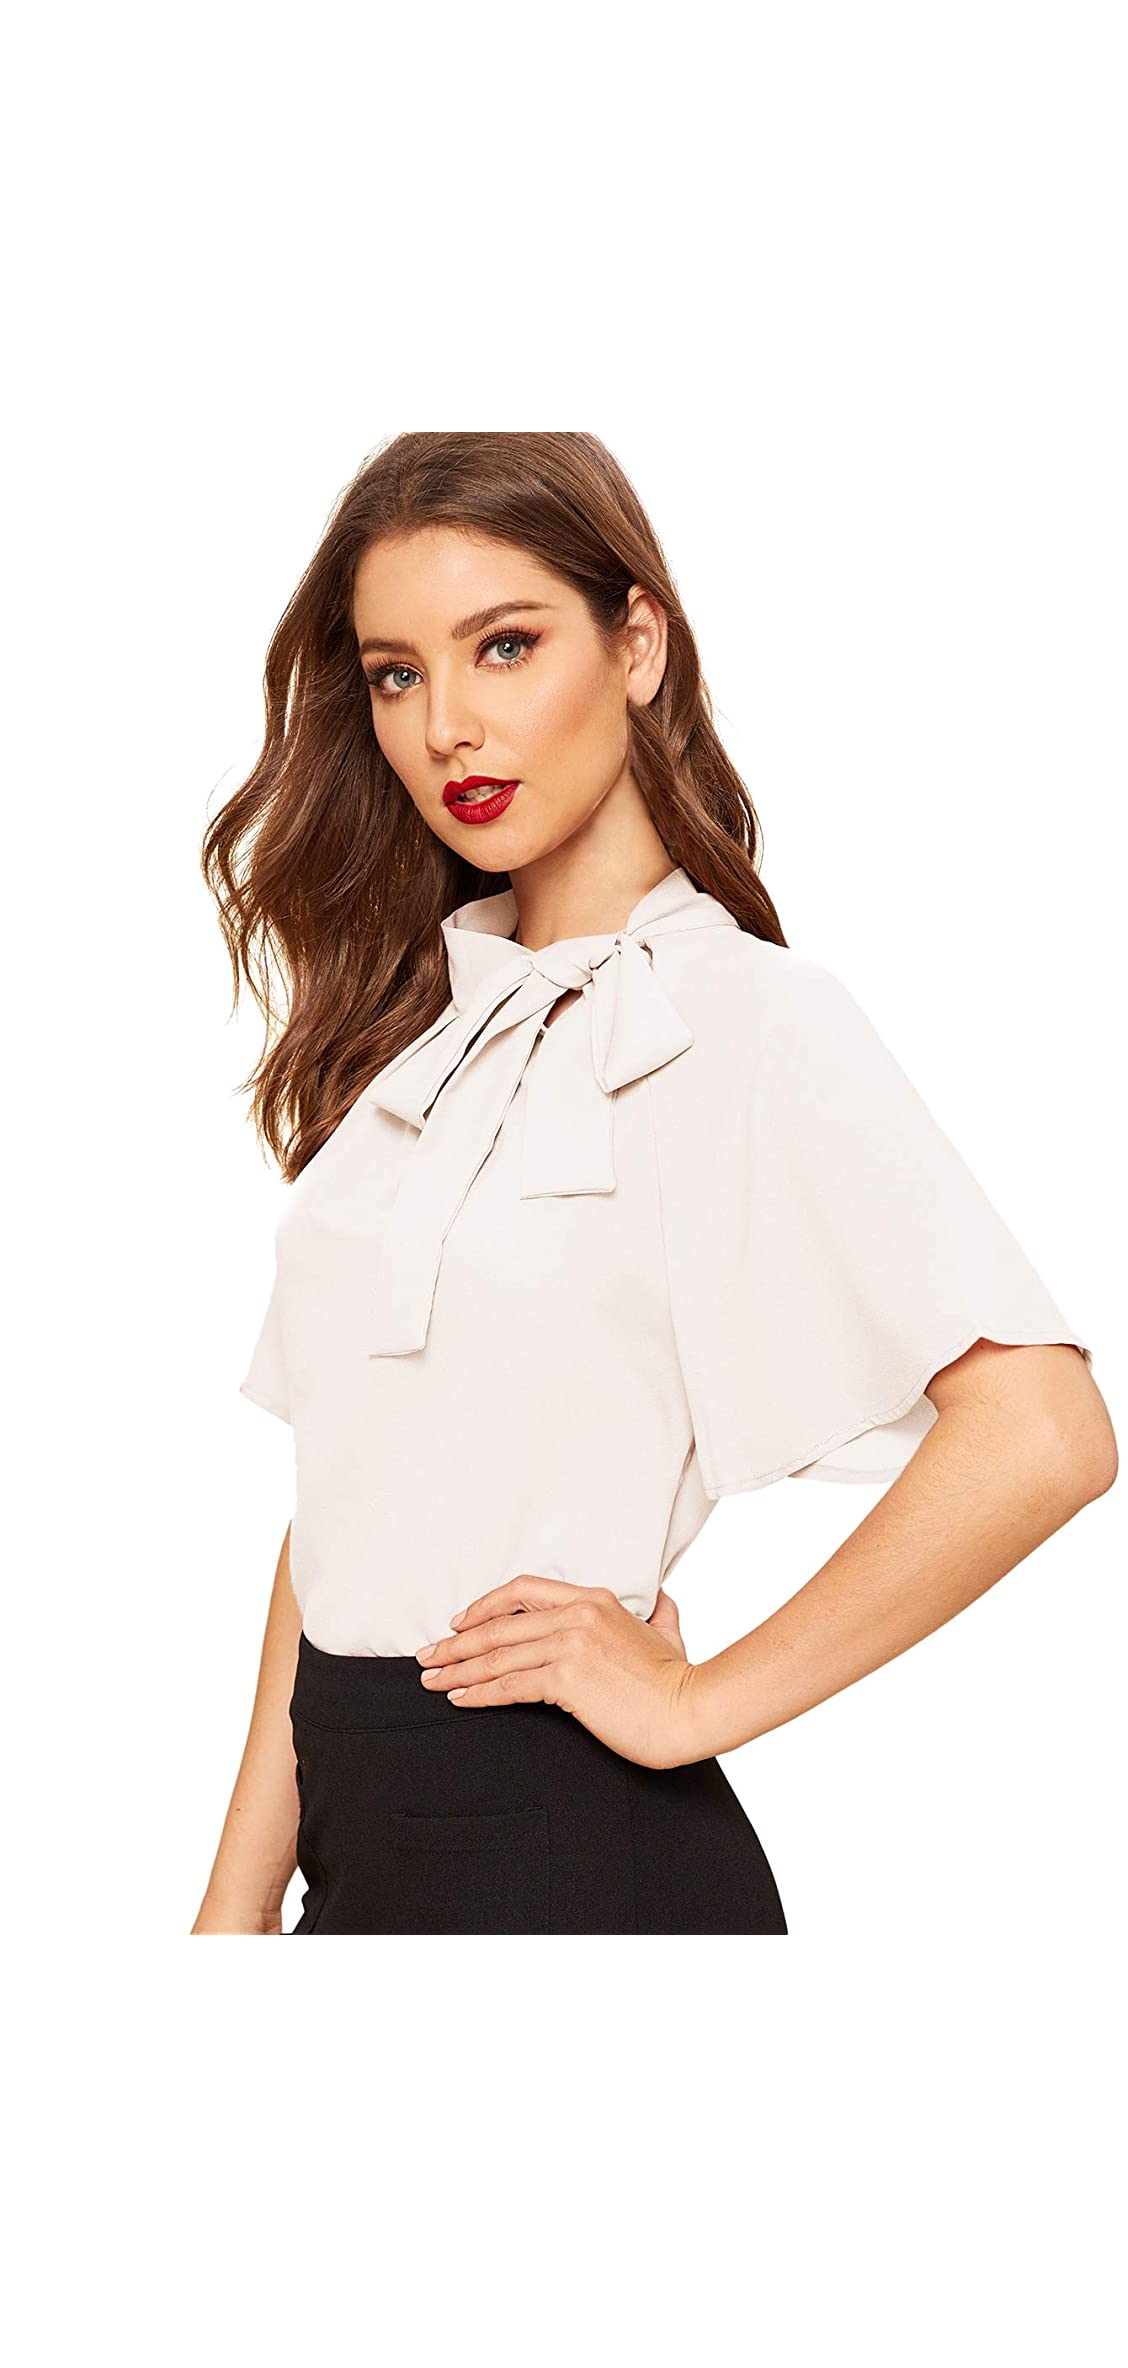 Women's Casual Side Bow Tie Neck Short Sleeve Blouse Shirt